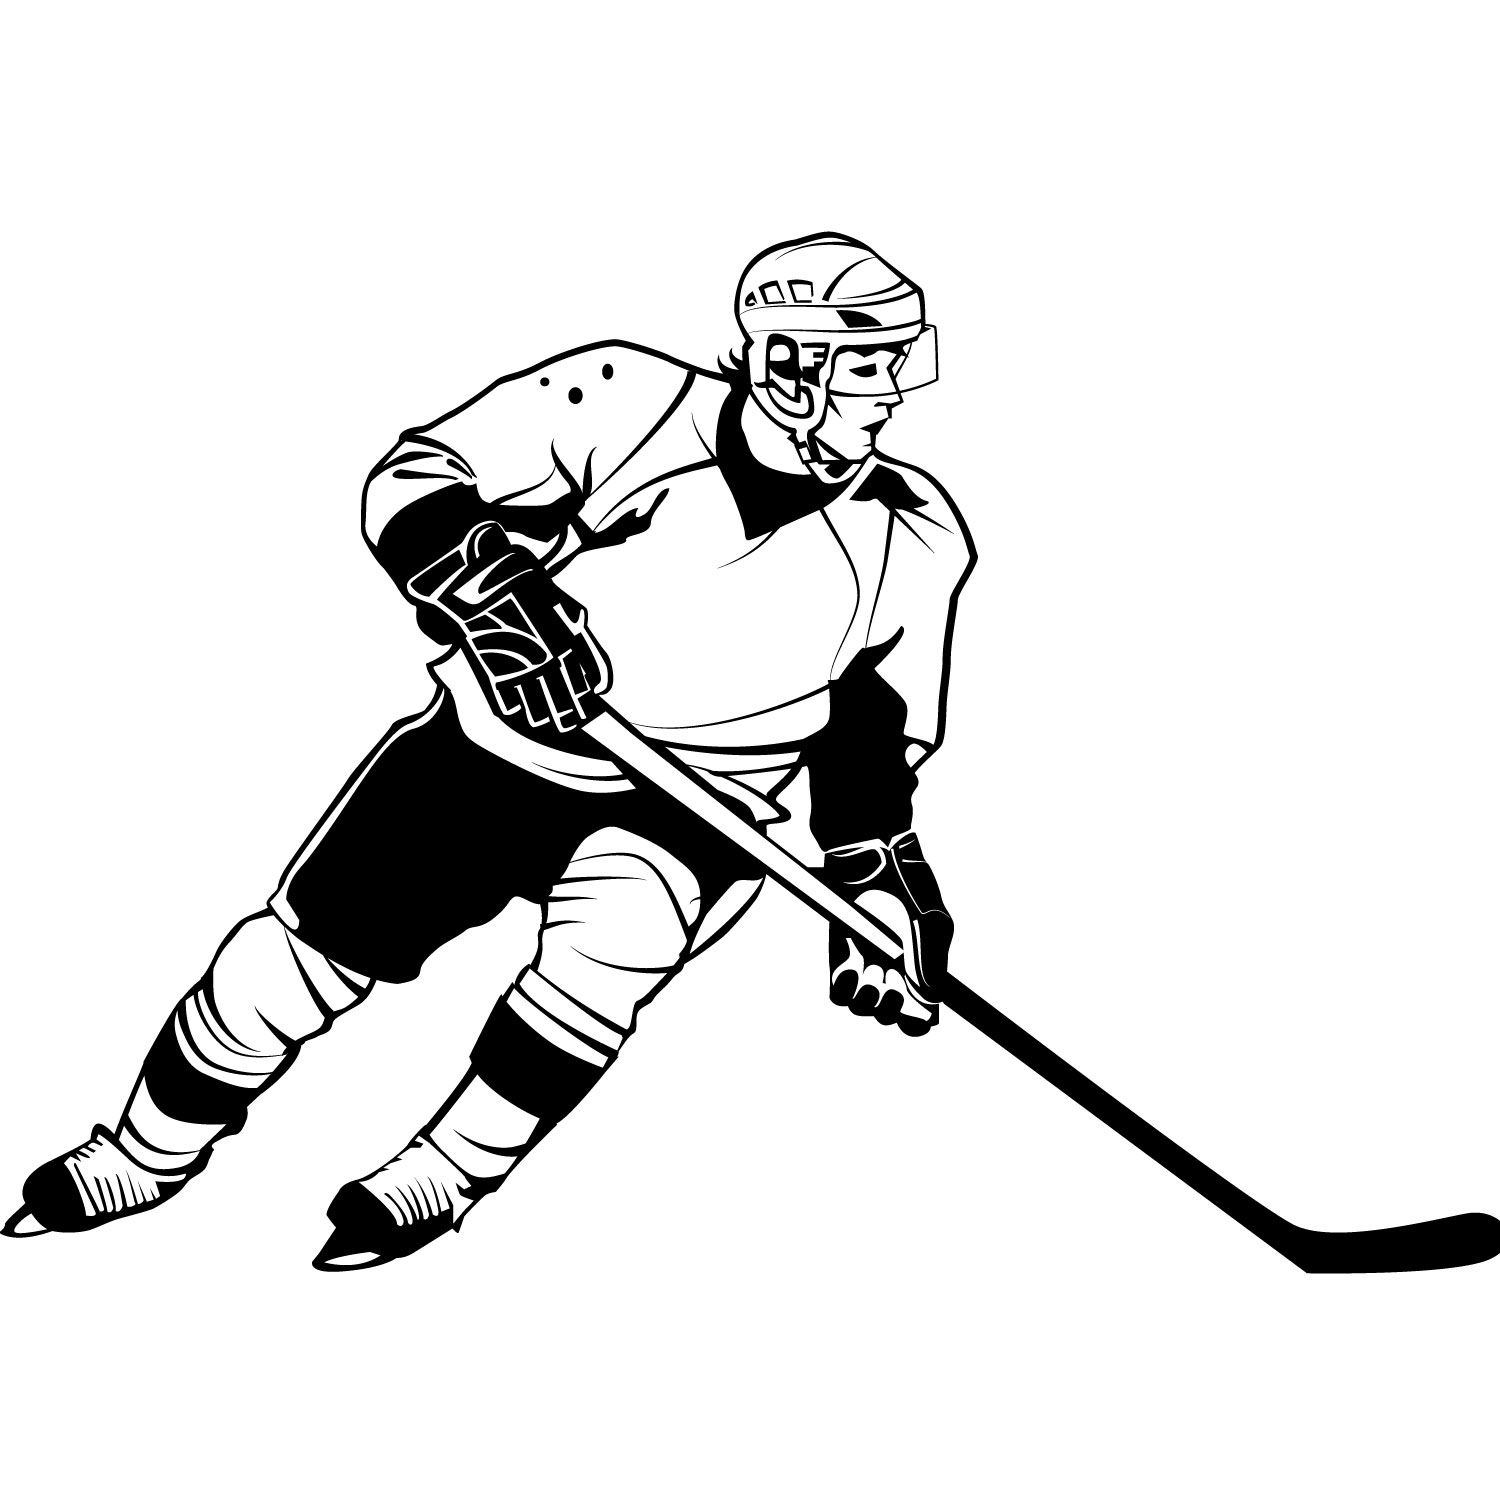 Hockey Clip Art Images Free Clipart Panda Free Clipart Images Hockey Players Hockey Drawing Ice Hockey